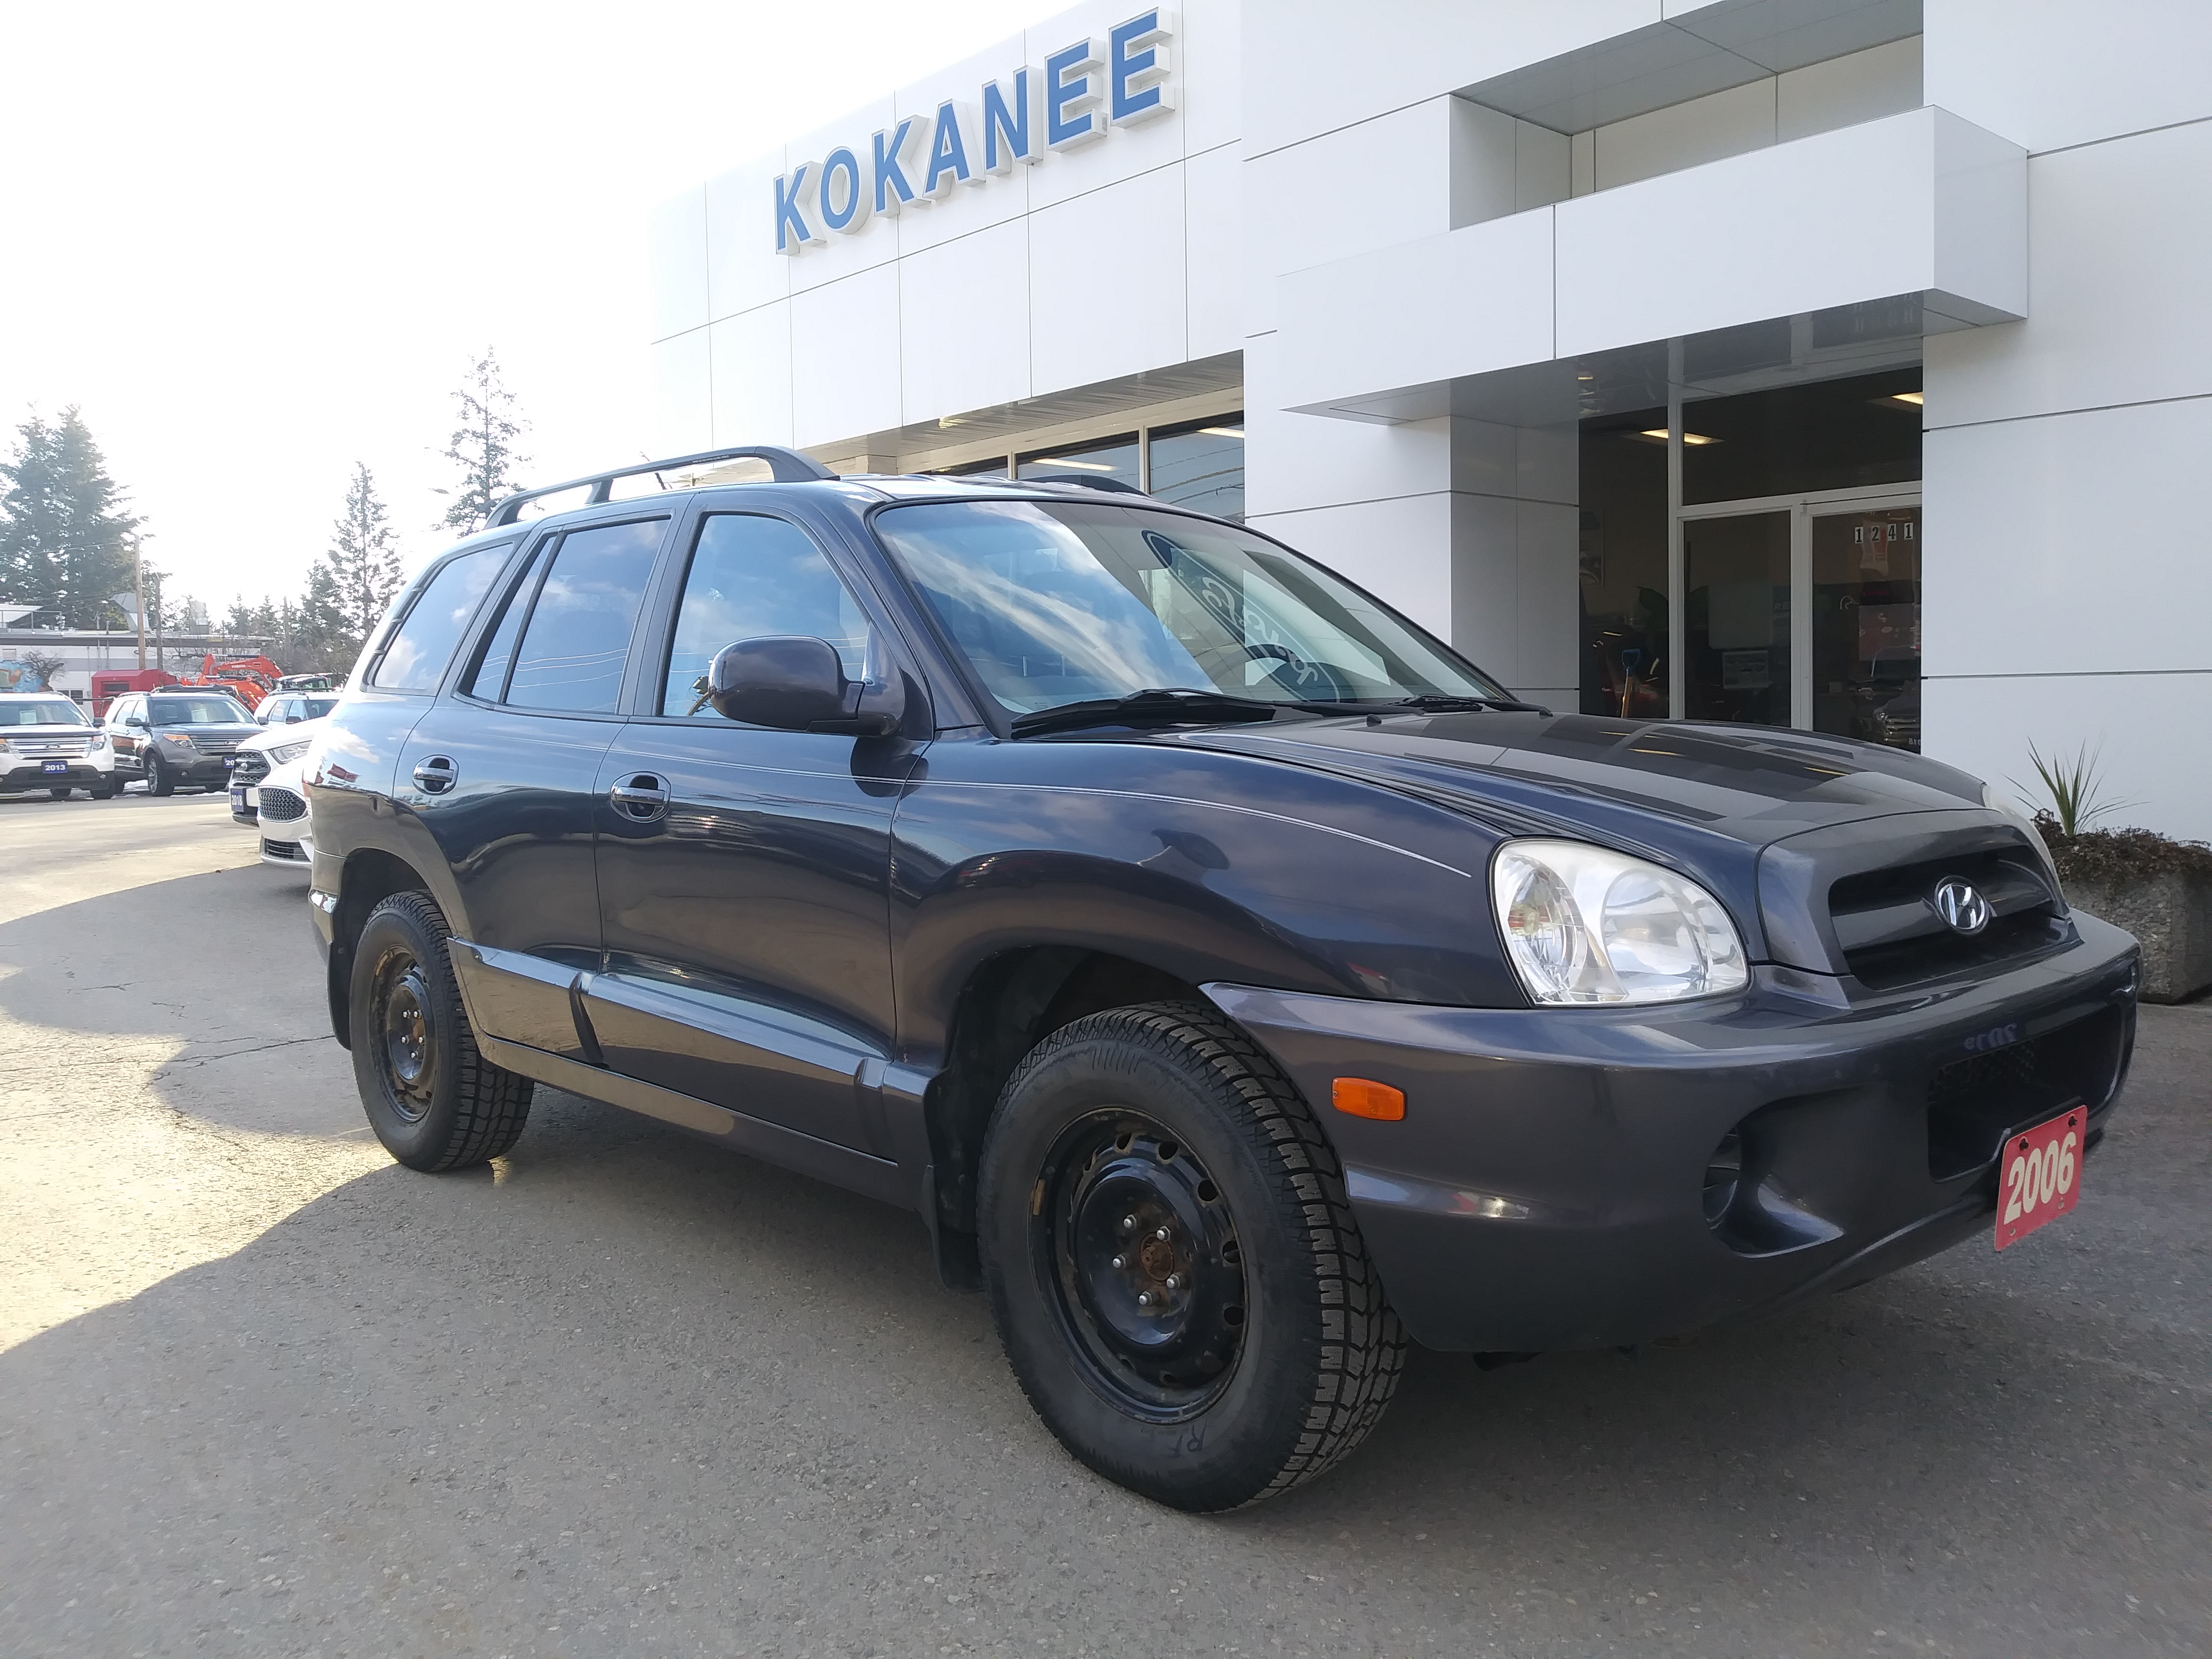 Used Cars Trucks Suvs For Sale In Creston Kokanee Ford Sales